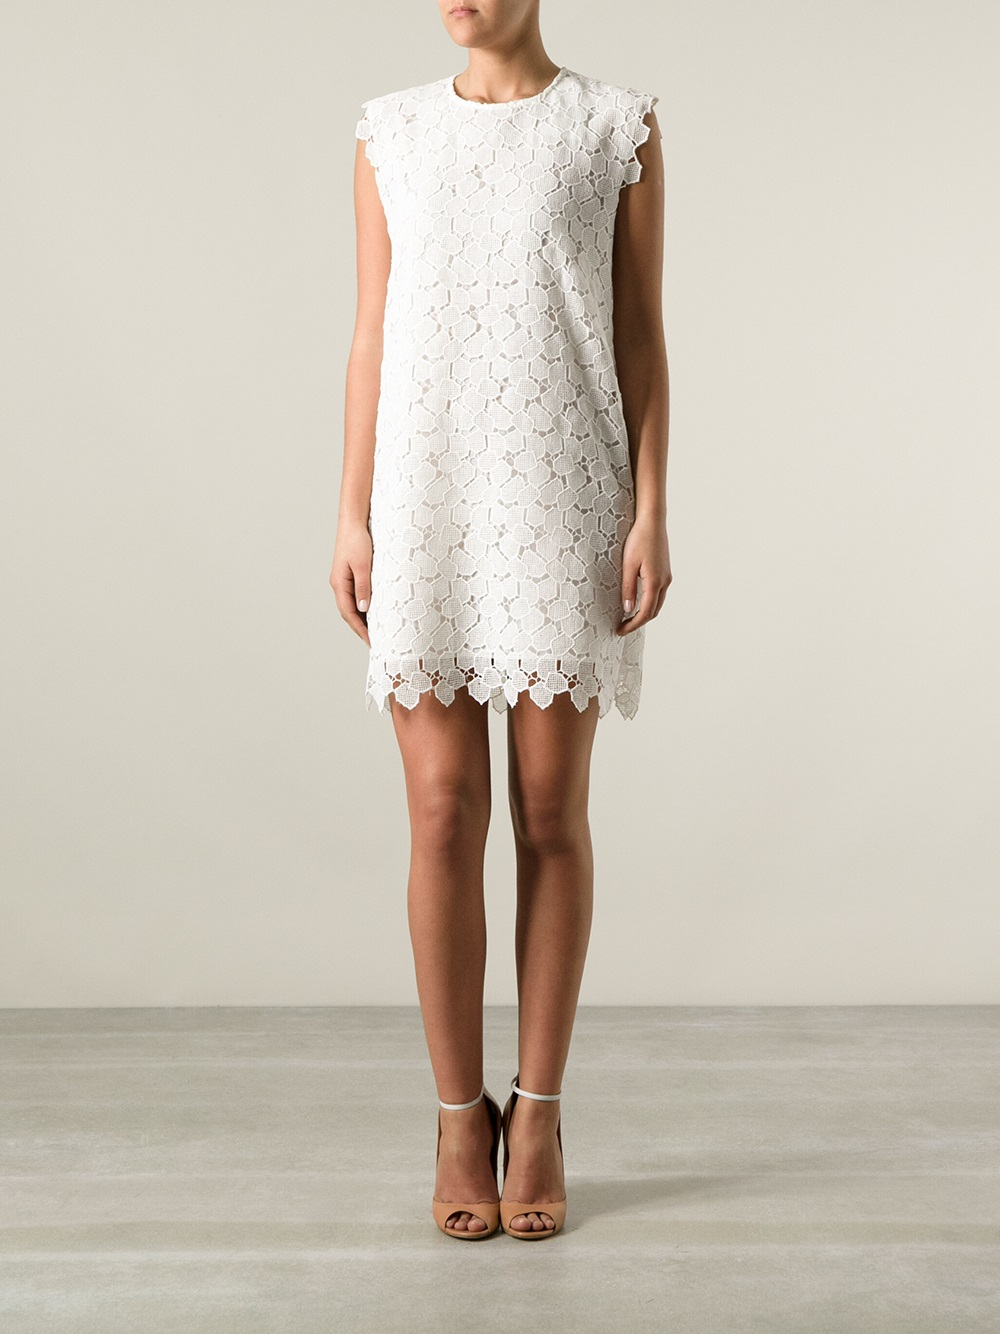 Lyst Cacharel Lace Shift Dress In White